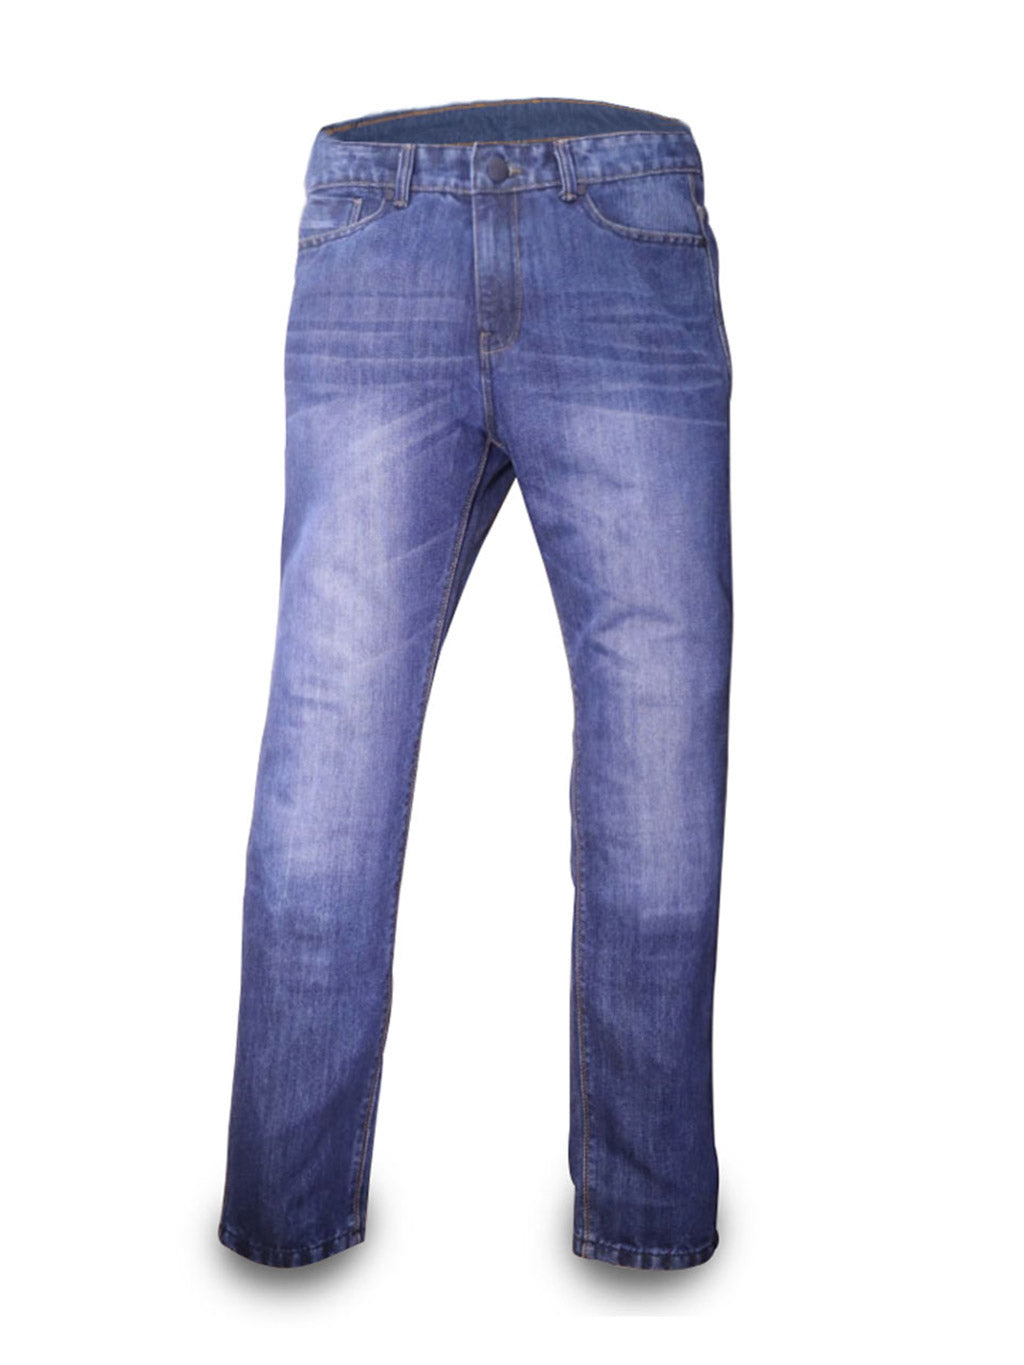 Custom Size Blue Detroit Steel Jeans